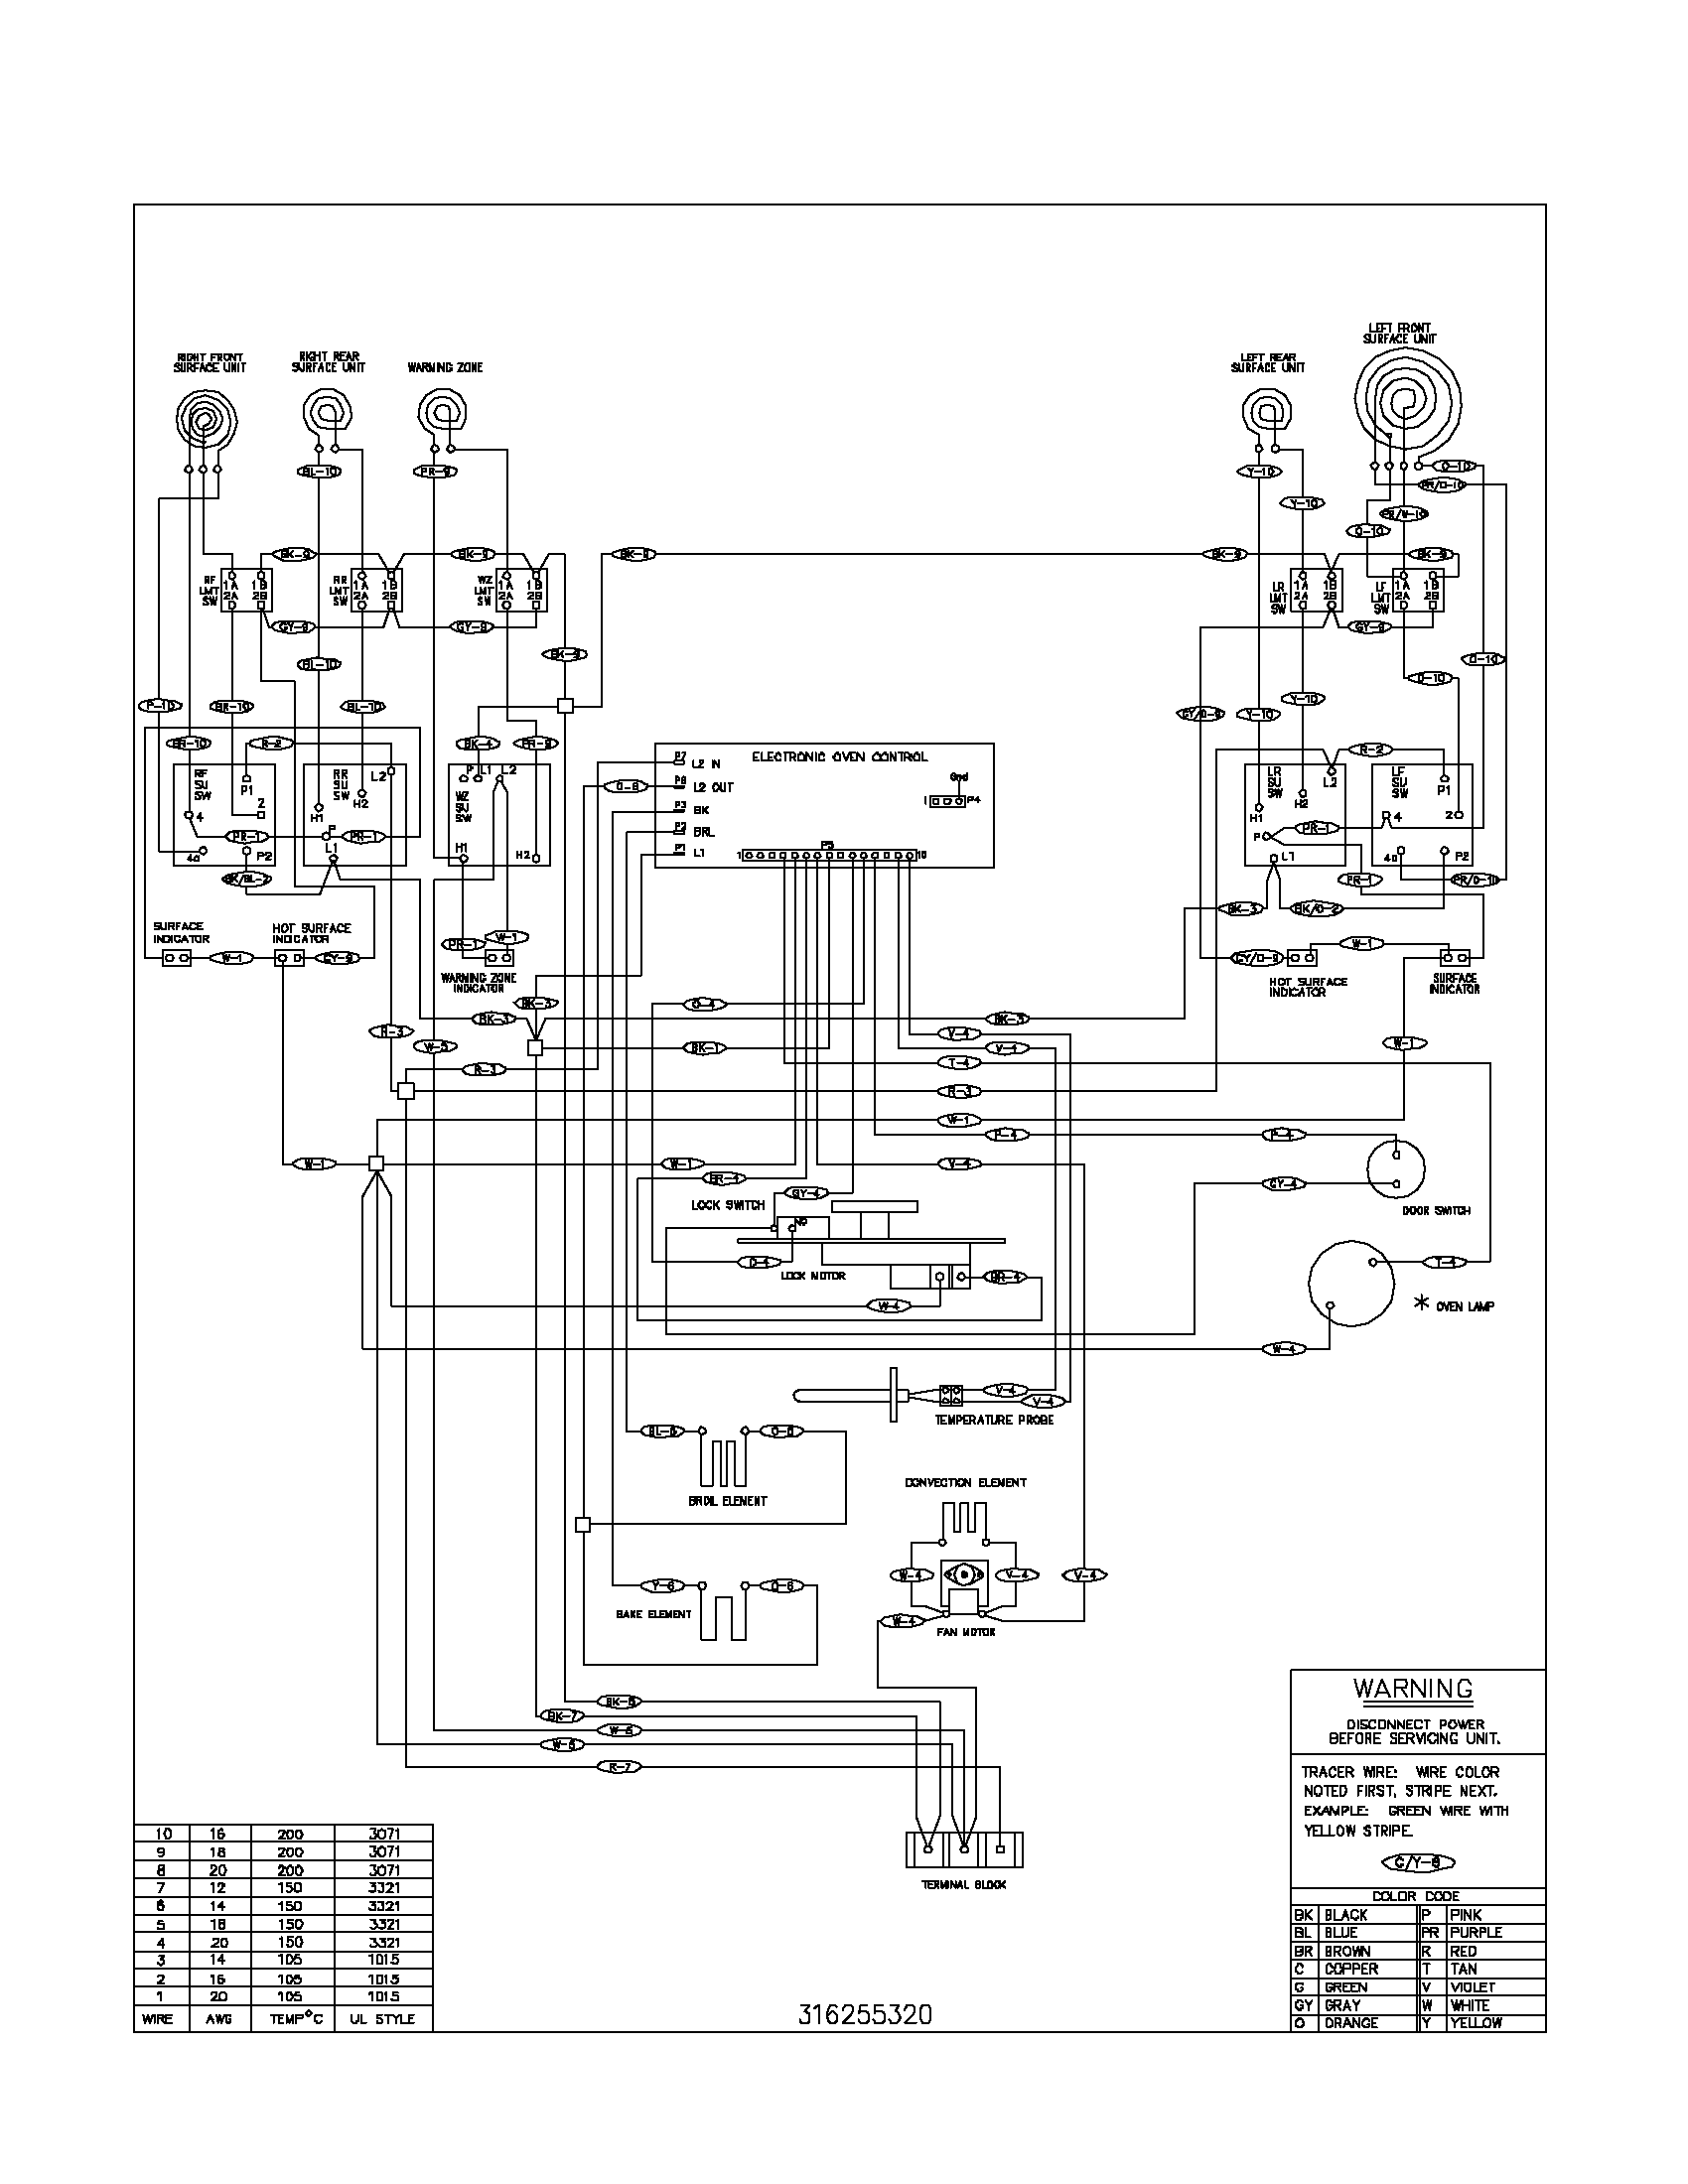 whirlpool fefl88acc electric range timer stove clocks and rh appliancetimers com Whirlpool Refrigerator Wiring Diagram Whirlpool Dishwasher Parts Diagram